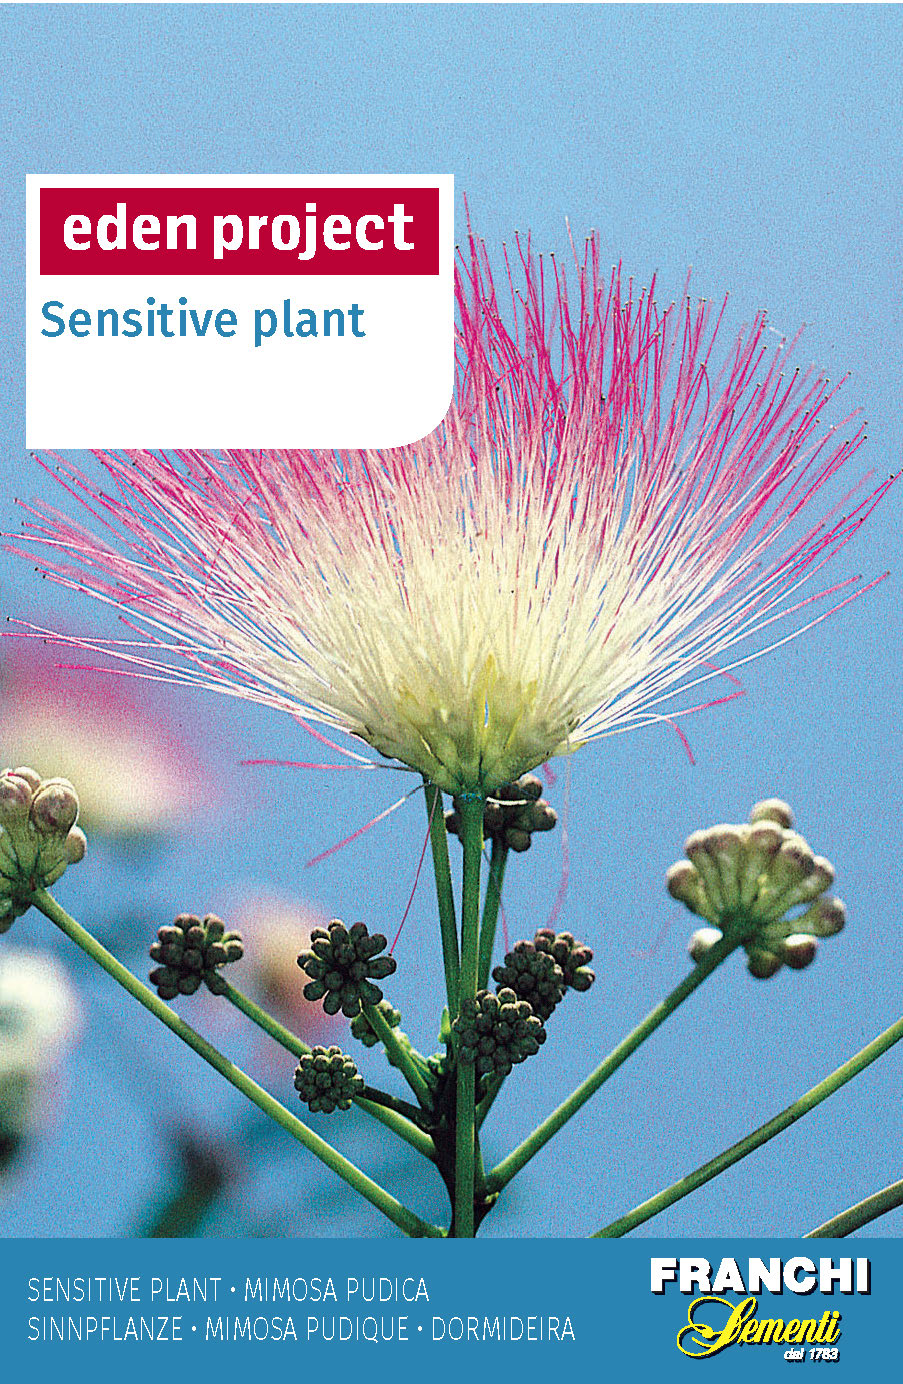 The Sensitive Plant - Mimosa pudica Eden Project Range